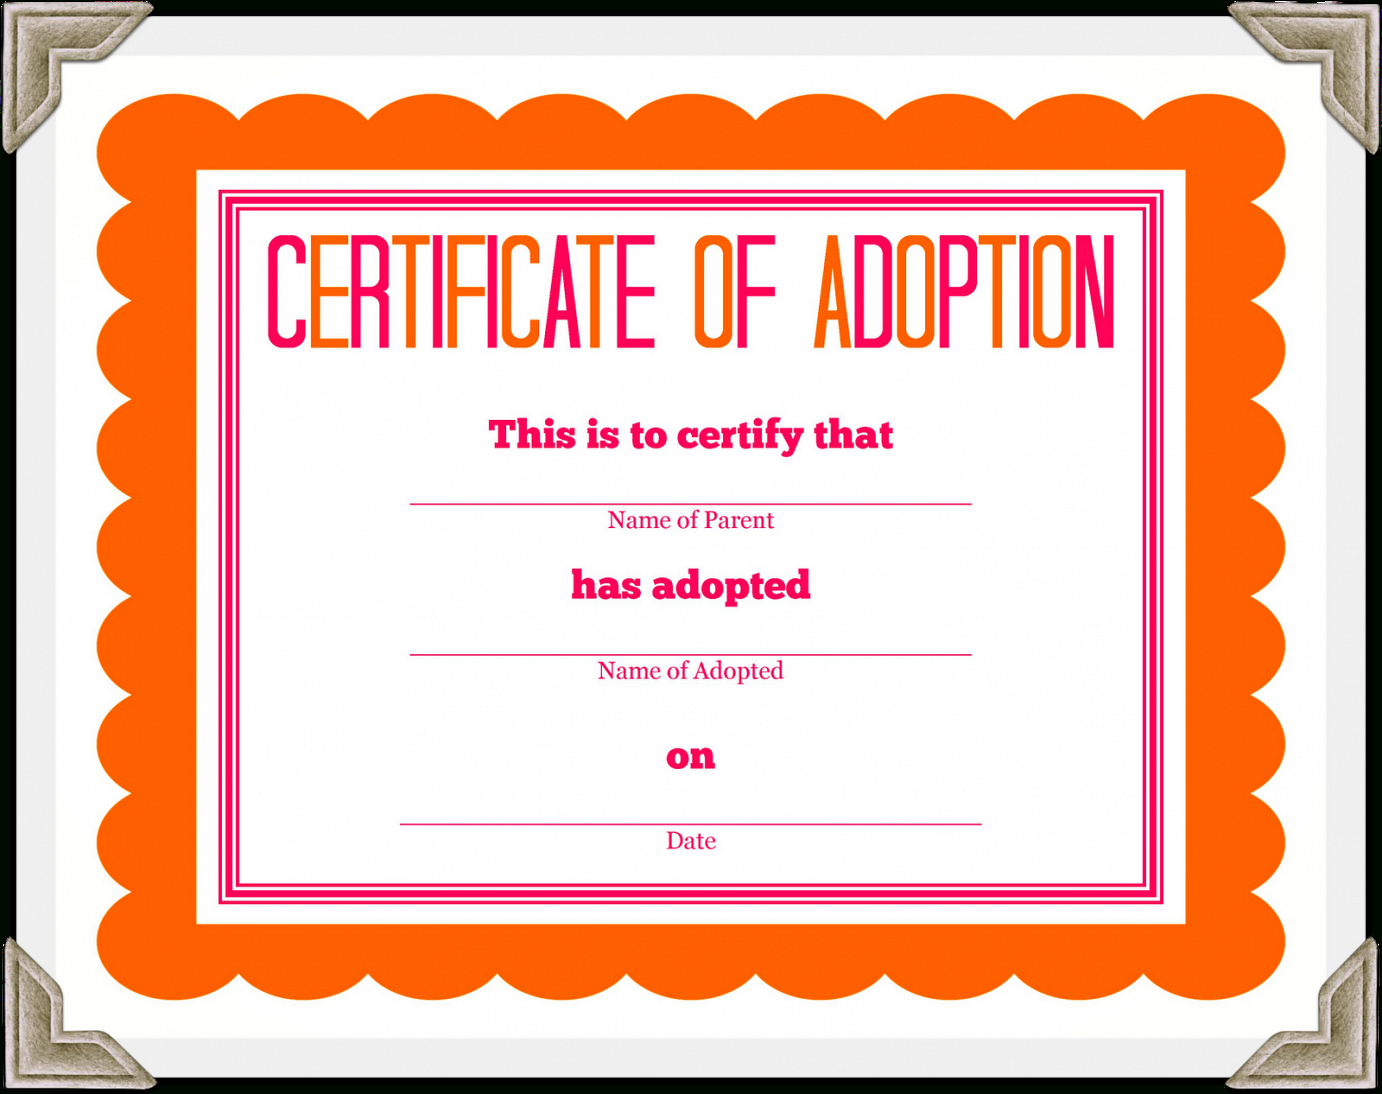 Adoption Docs Certificate Templates Printable Throughout Free Funny Certificate Templates For Word